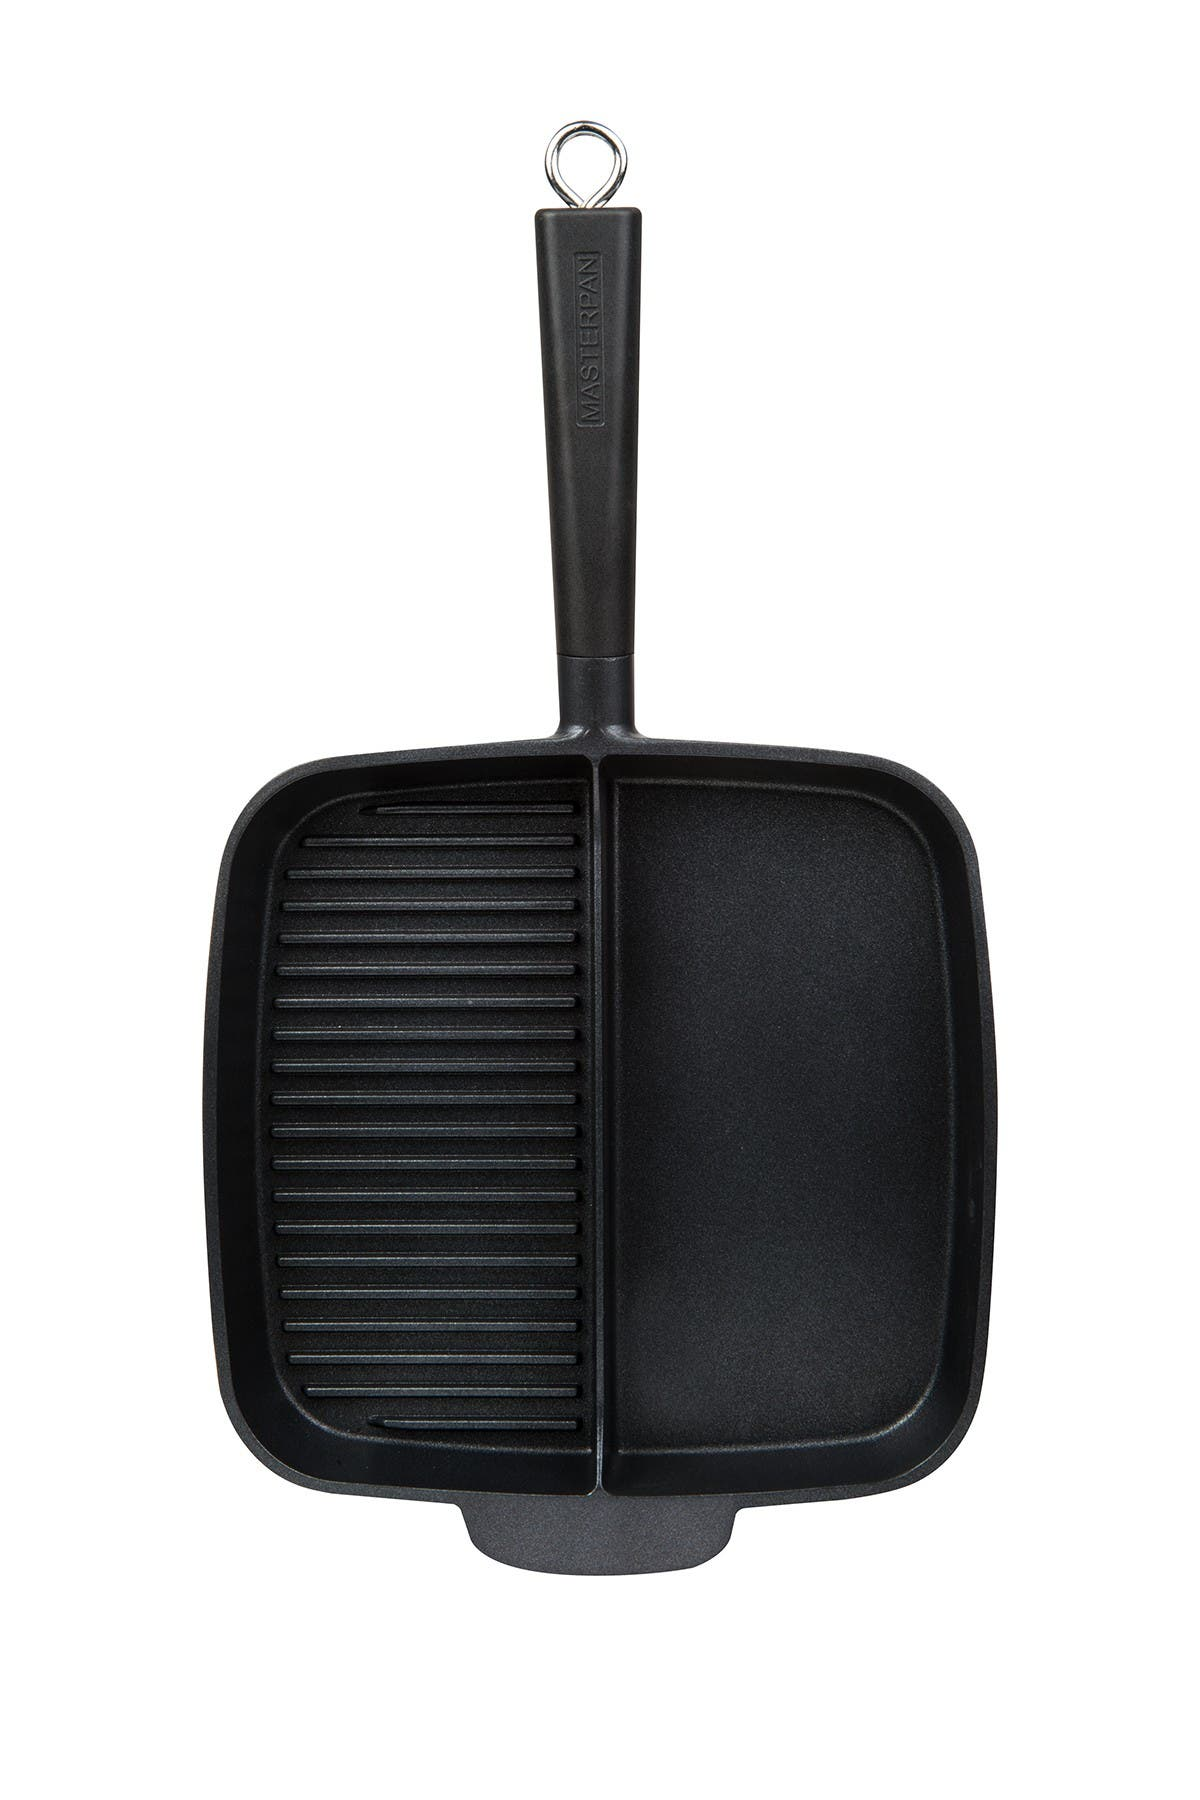 "Image of MASTERPAN Black Non-Stick 2 Section 11"" Meal Skillet"